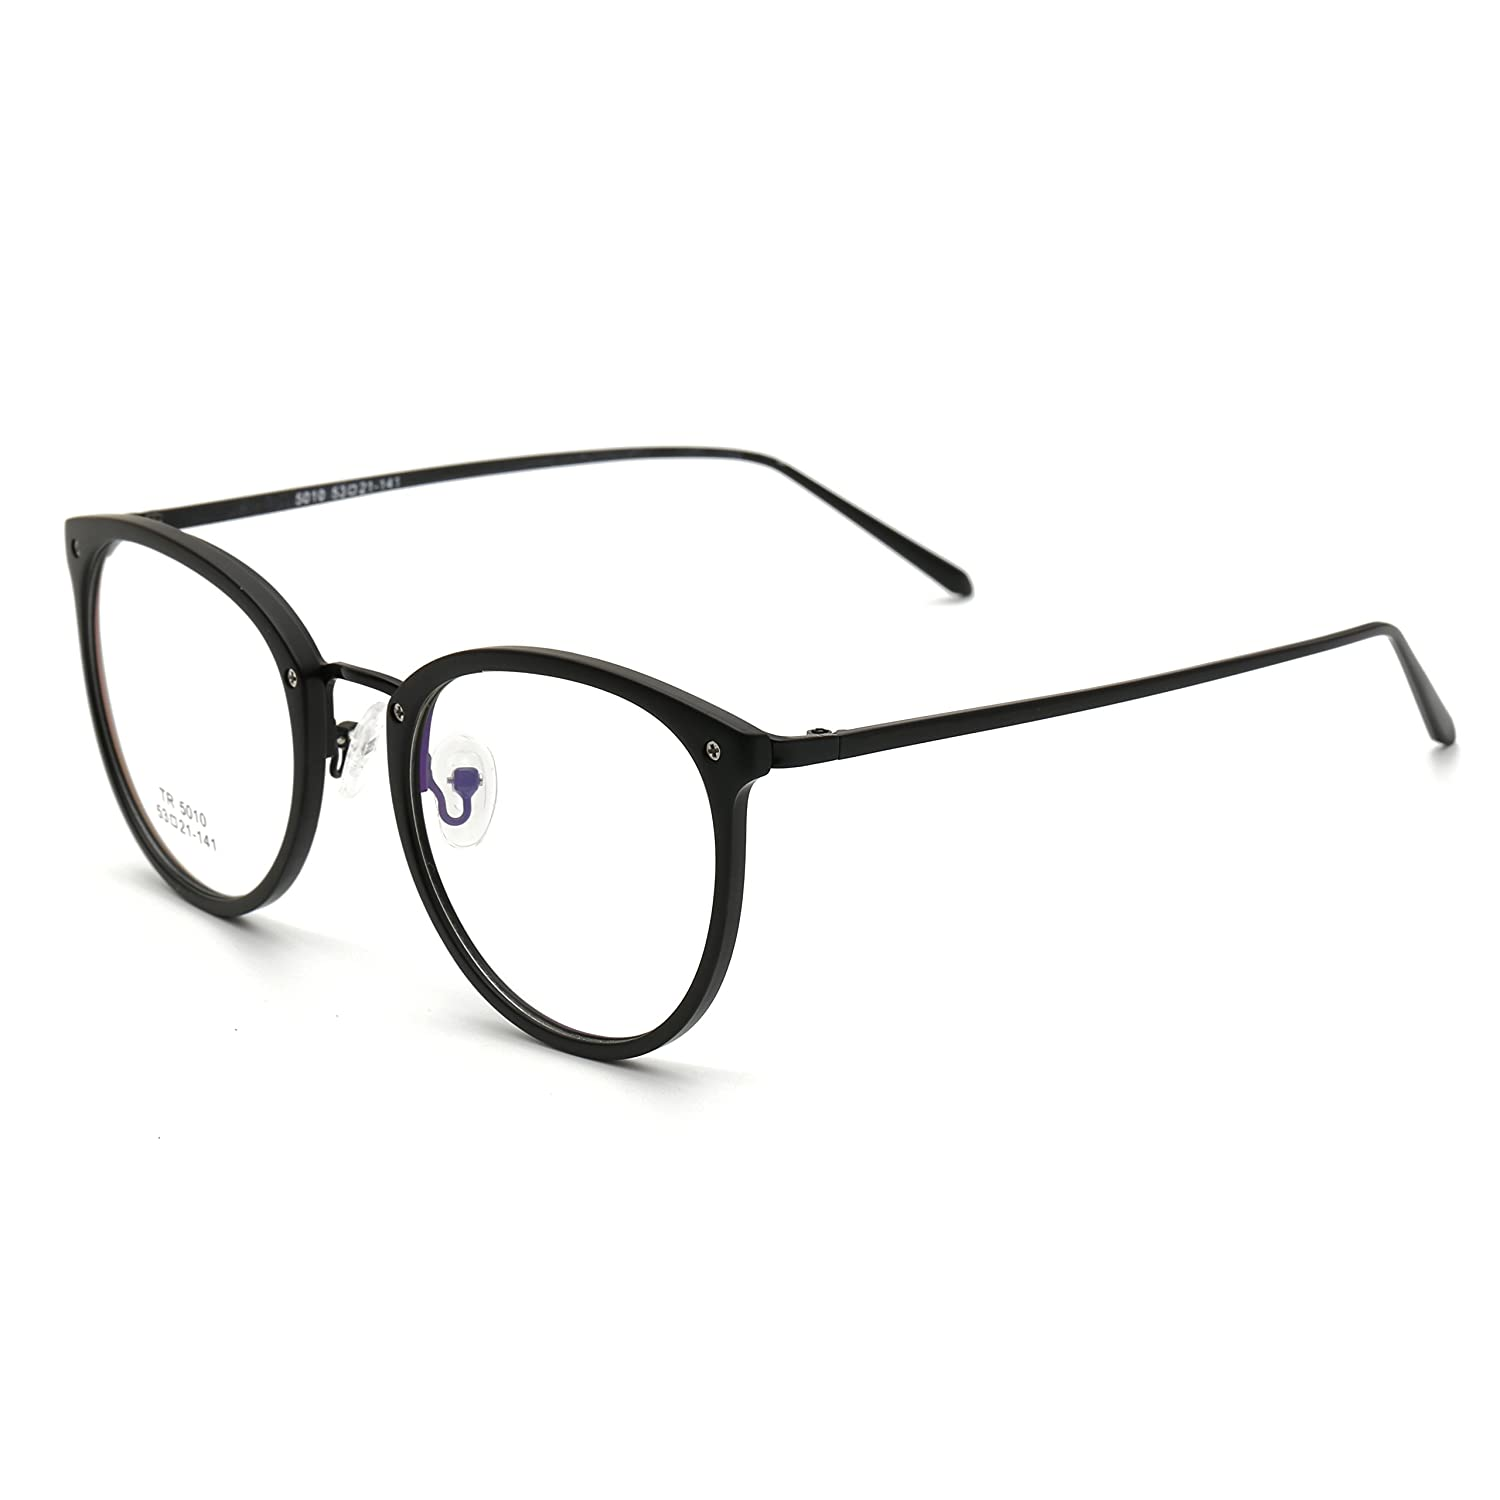 Womens Prescription Eyewear Frames | Amazon.ca